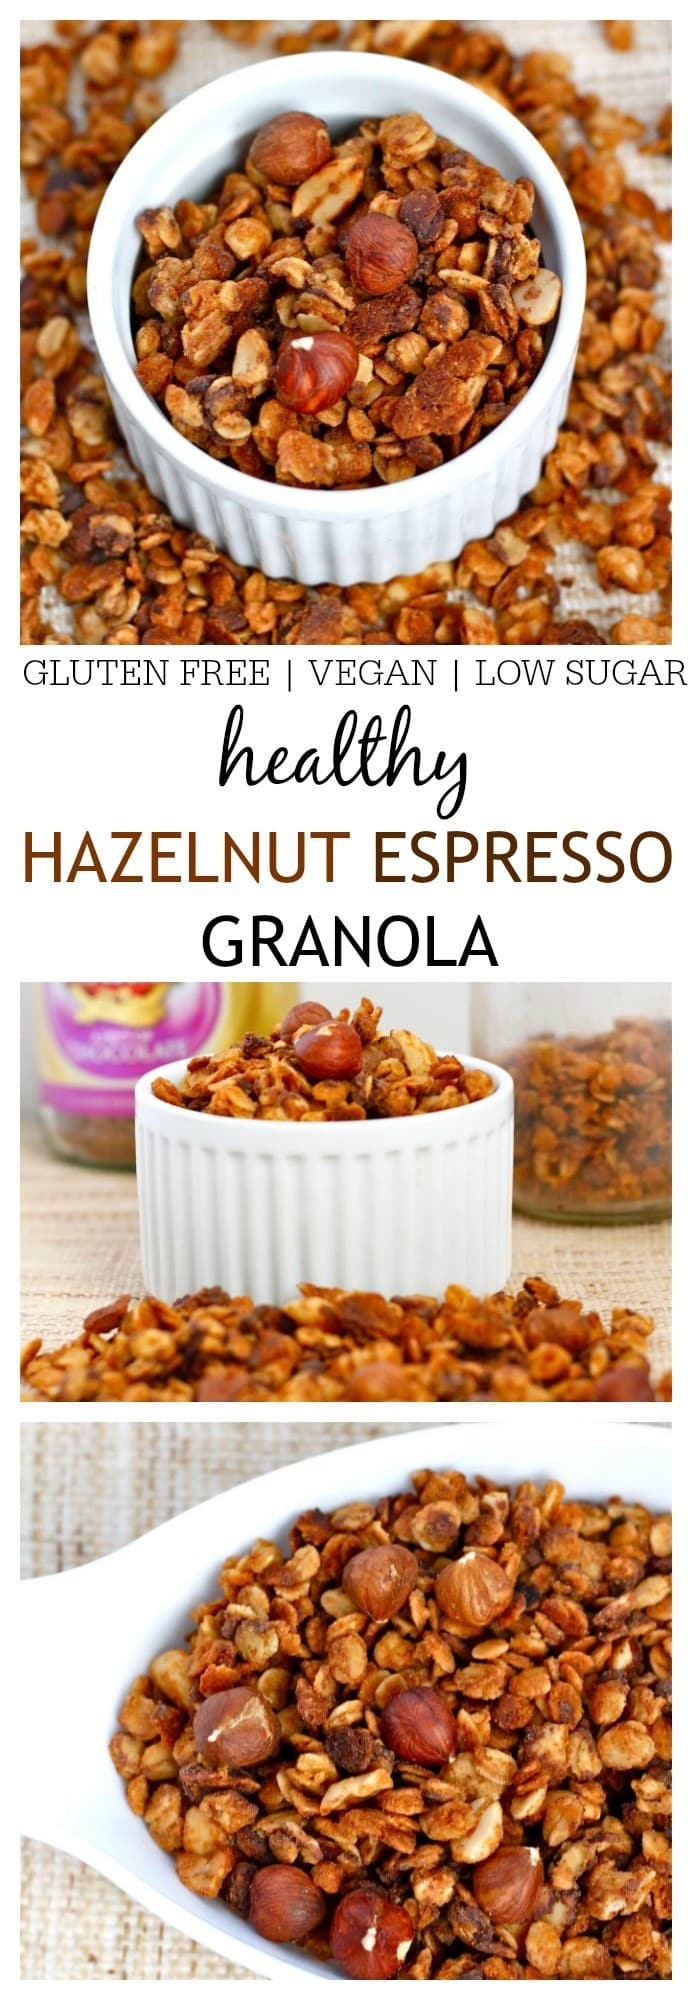 Hazelnut Espresso Granola- A delicious, healthy and nutritious granola recipe which has hints of espresso thanks to ground coffee added in the baking process! This granola is perfect for snacking or for breakfast and is gluten free, refined sugar free and has a vegan version! @thebigmansworld -thebigmansworld.com